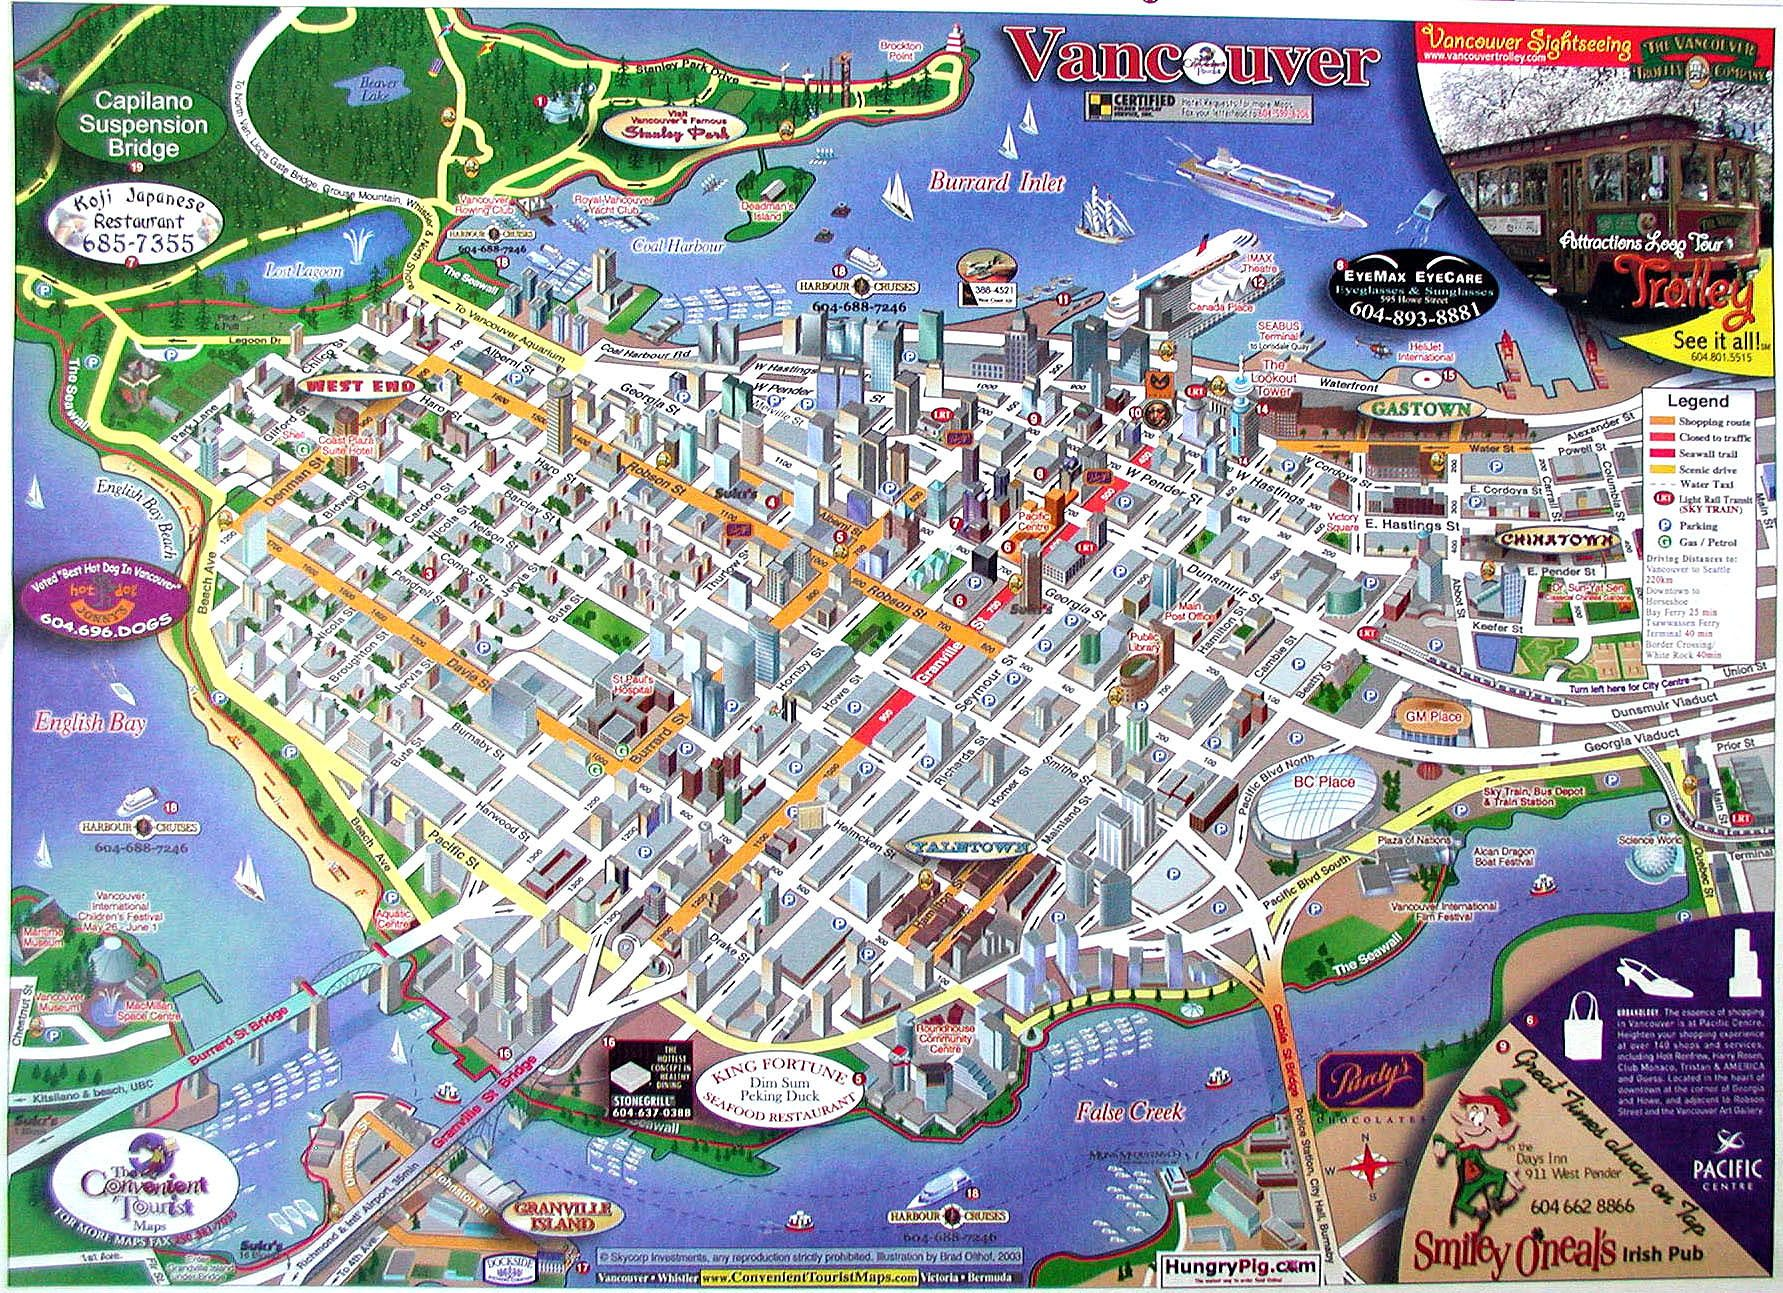 Vancouver BC This map makes me think that Vancouver is like Six